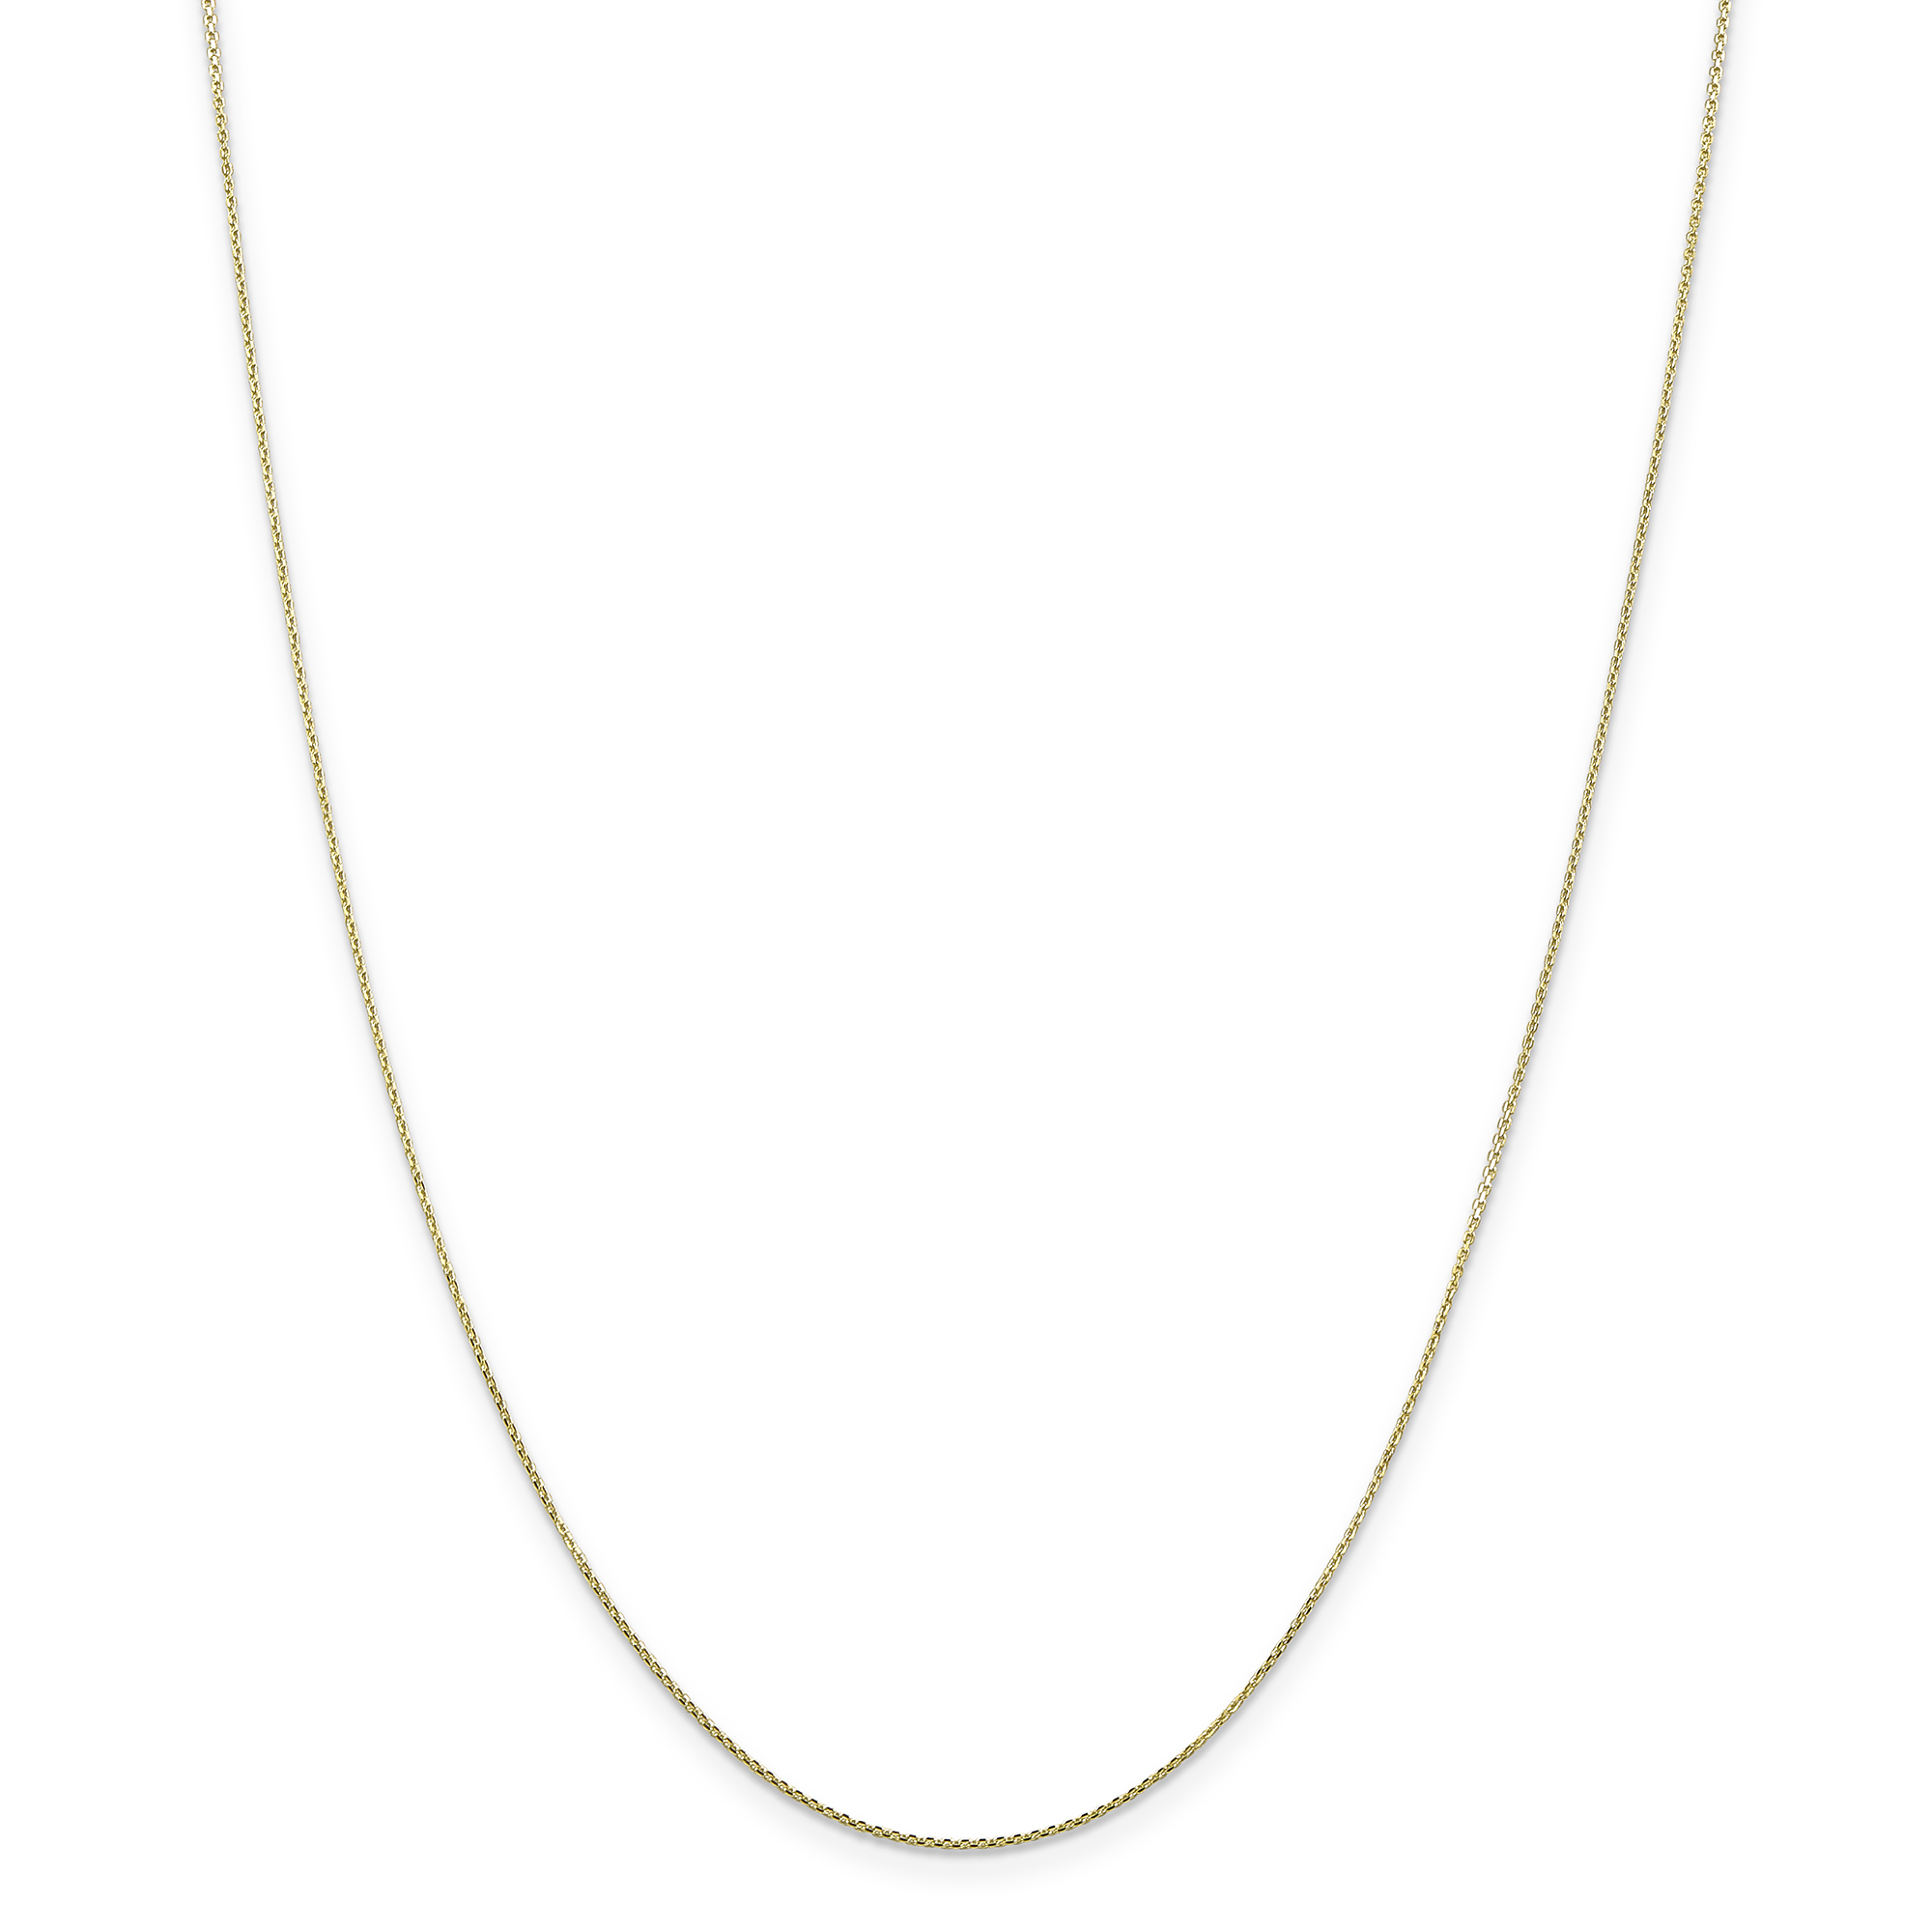 10K Yellow Gold .80mm Diamond Cut Cable Chain 20 Inch - image 5 of 5